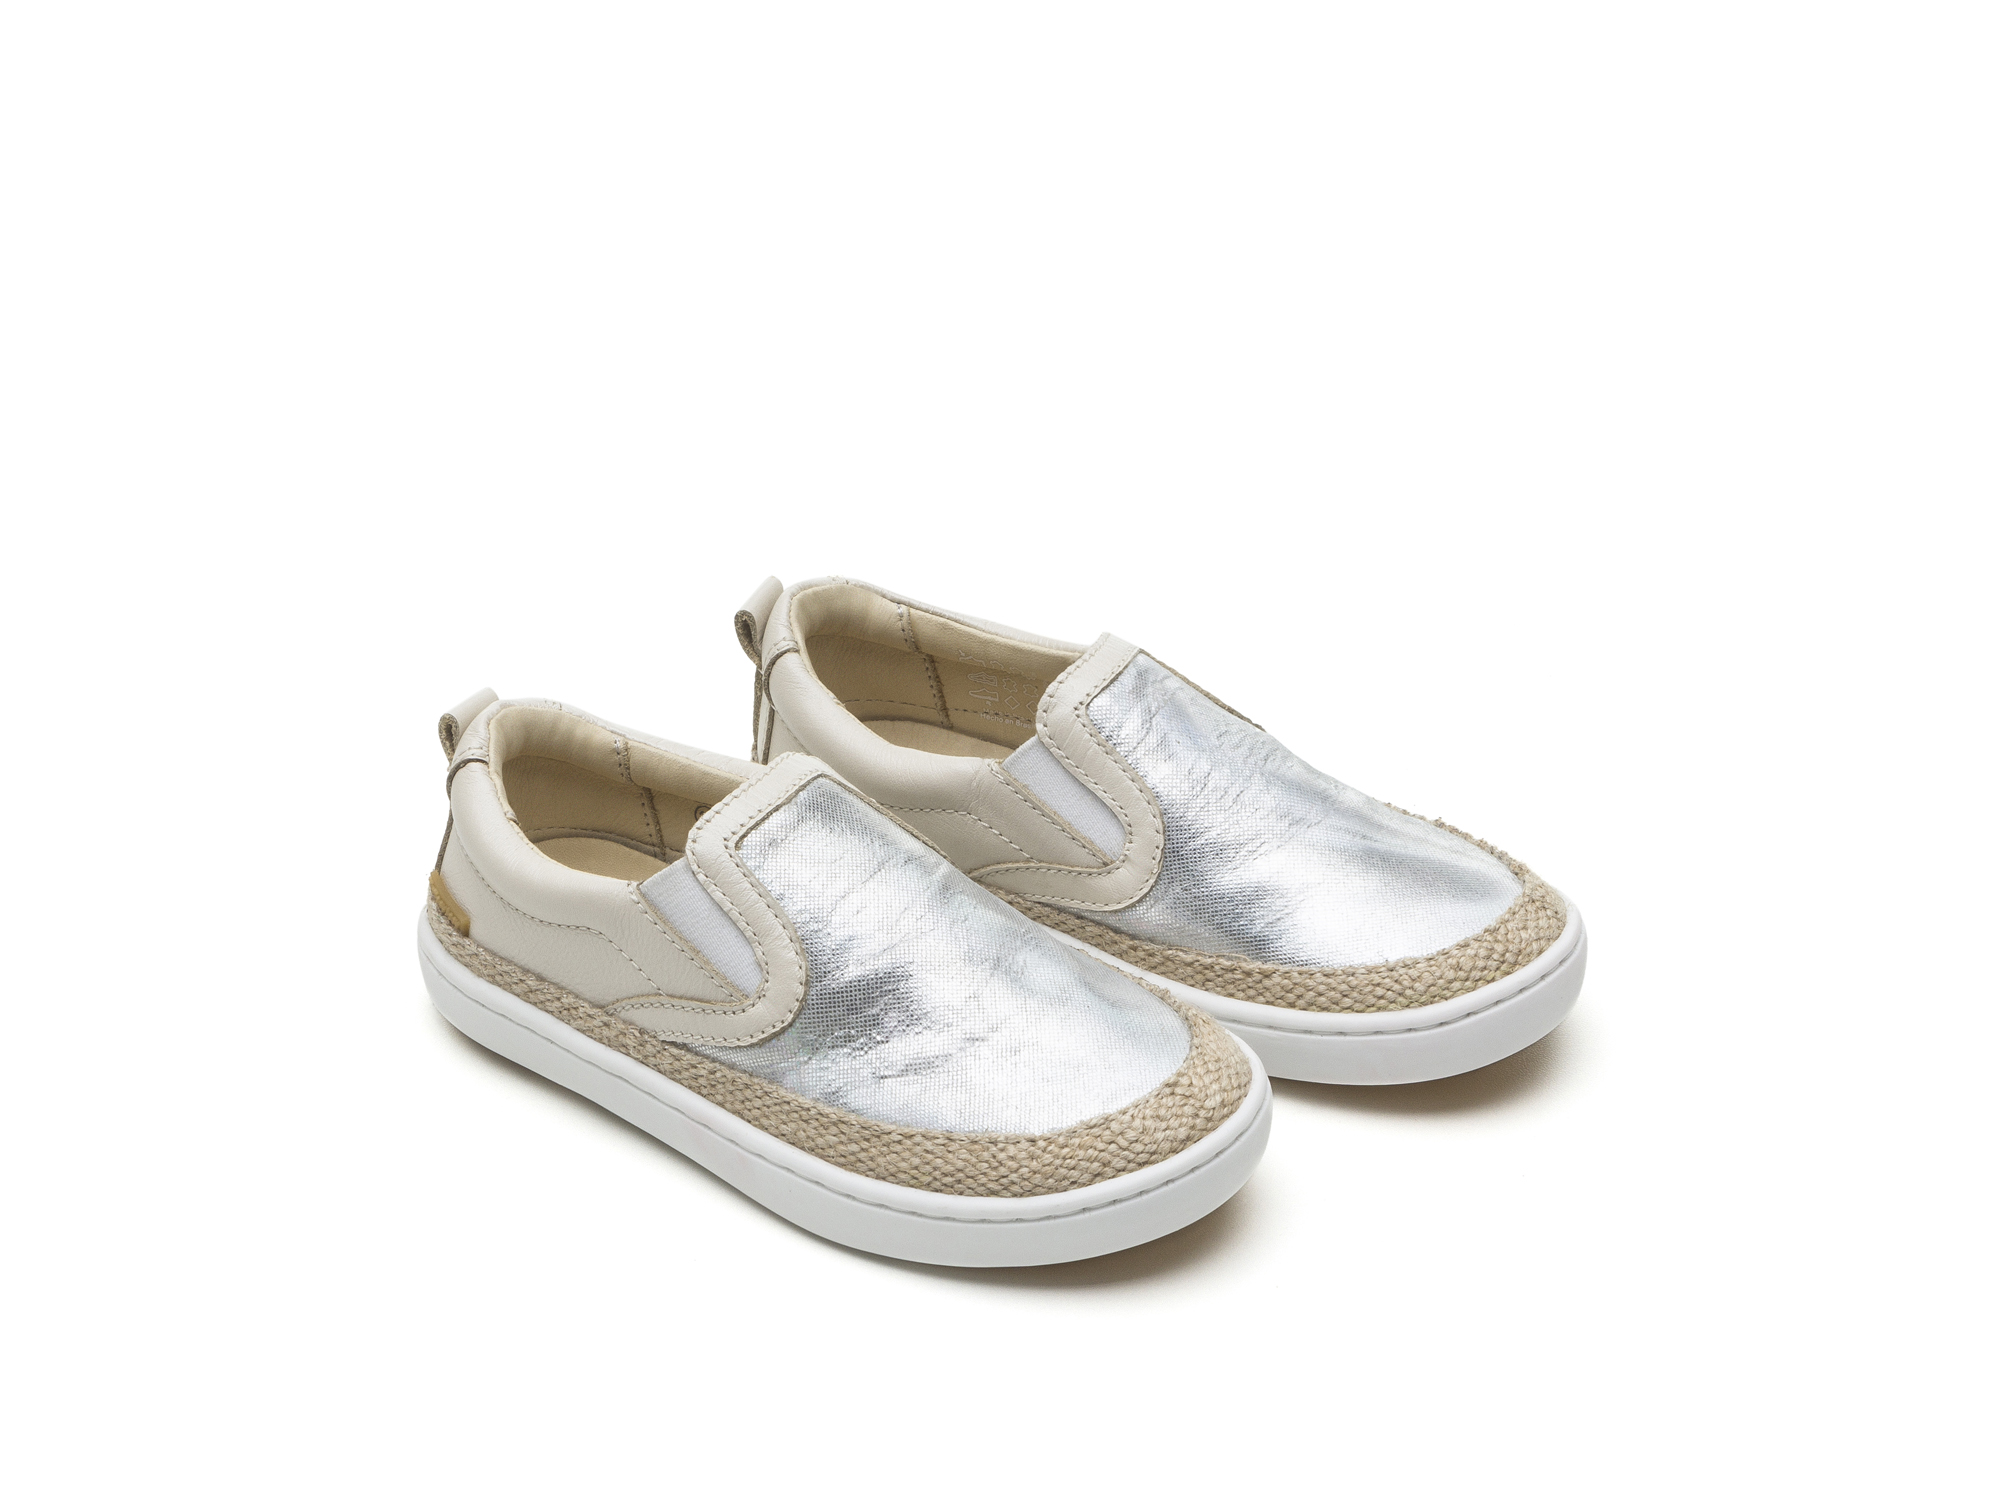 Tênis Little Straw Sea Sparkle/ Antique White Toddler 2 à 4 anos - 0